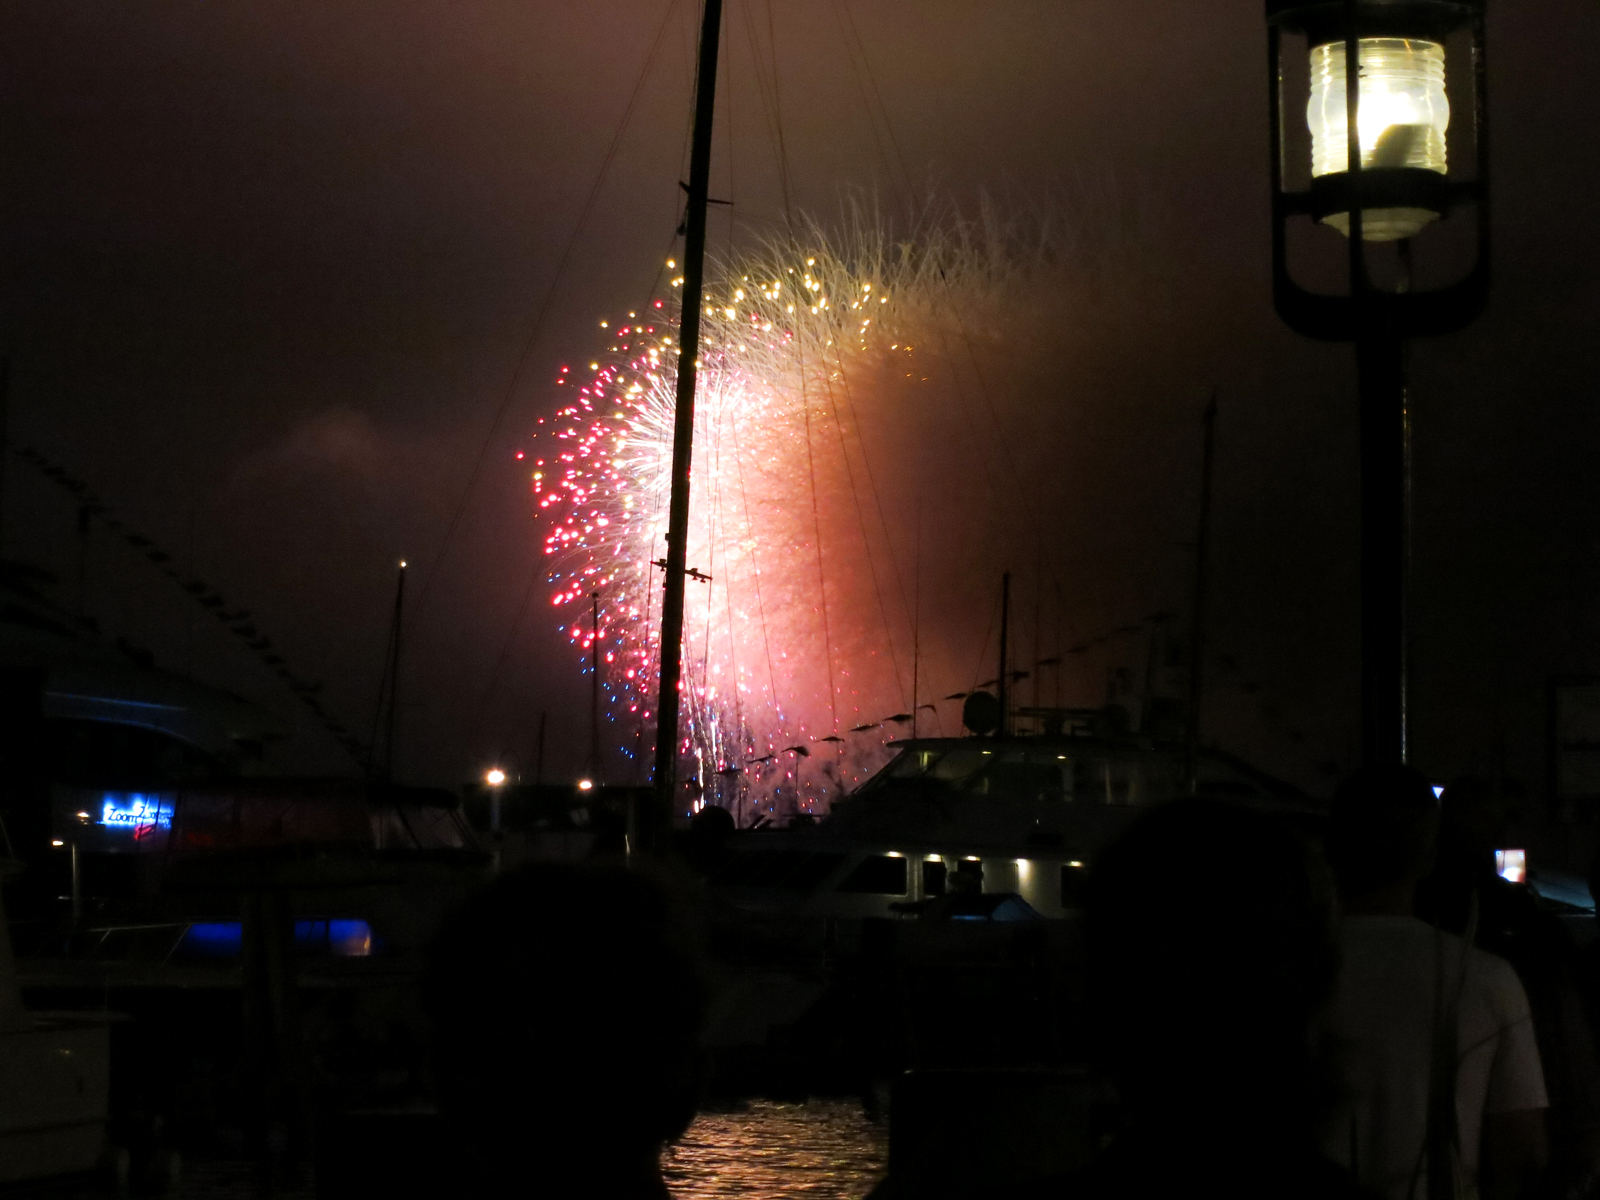 ROCKET'S RED GLARE OVER NEWPORT HARBOR - live. travel. adventure. bless. | The spectacular finale of the Newport Harbor Fireworks display. Happy 4th of July!